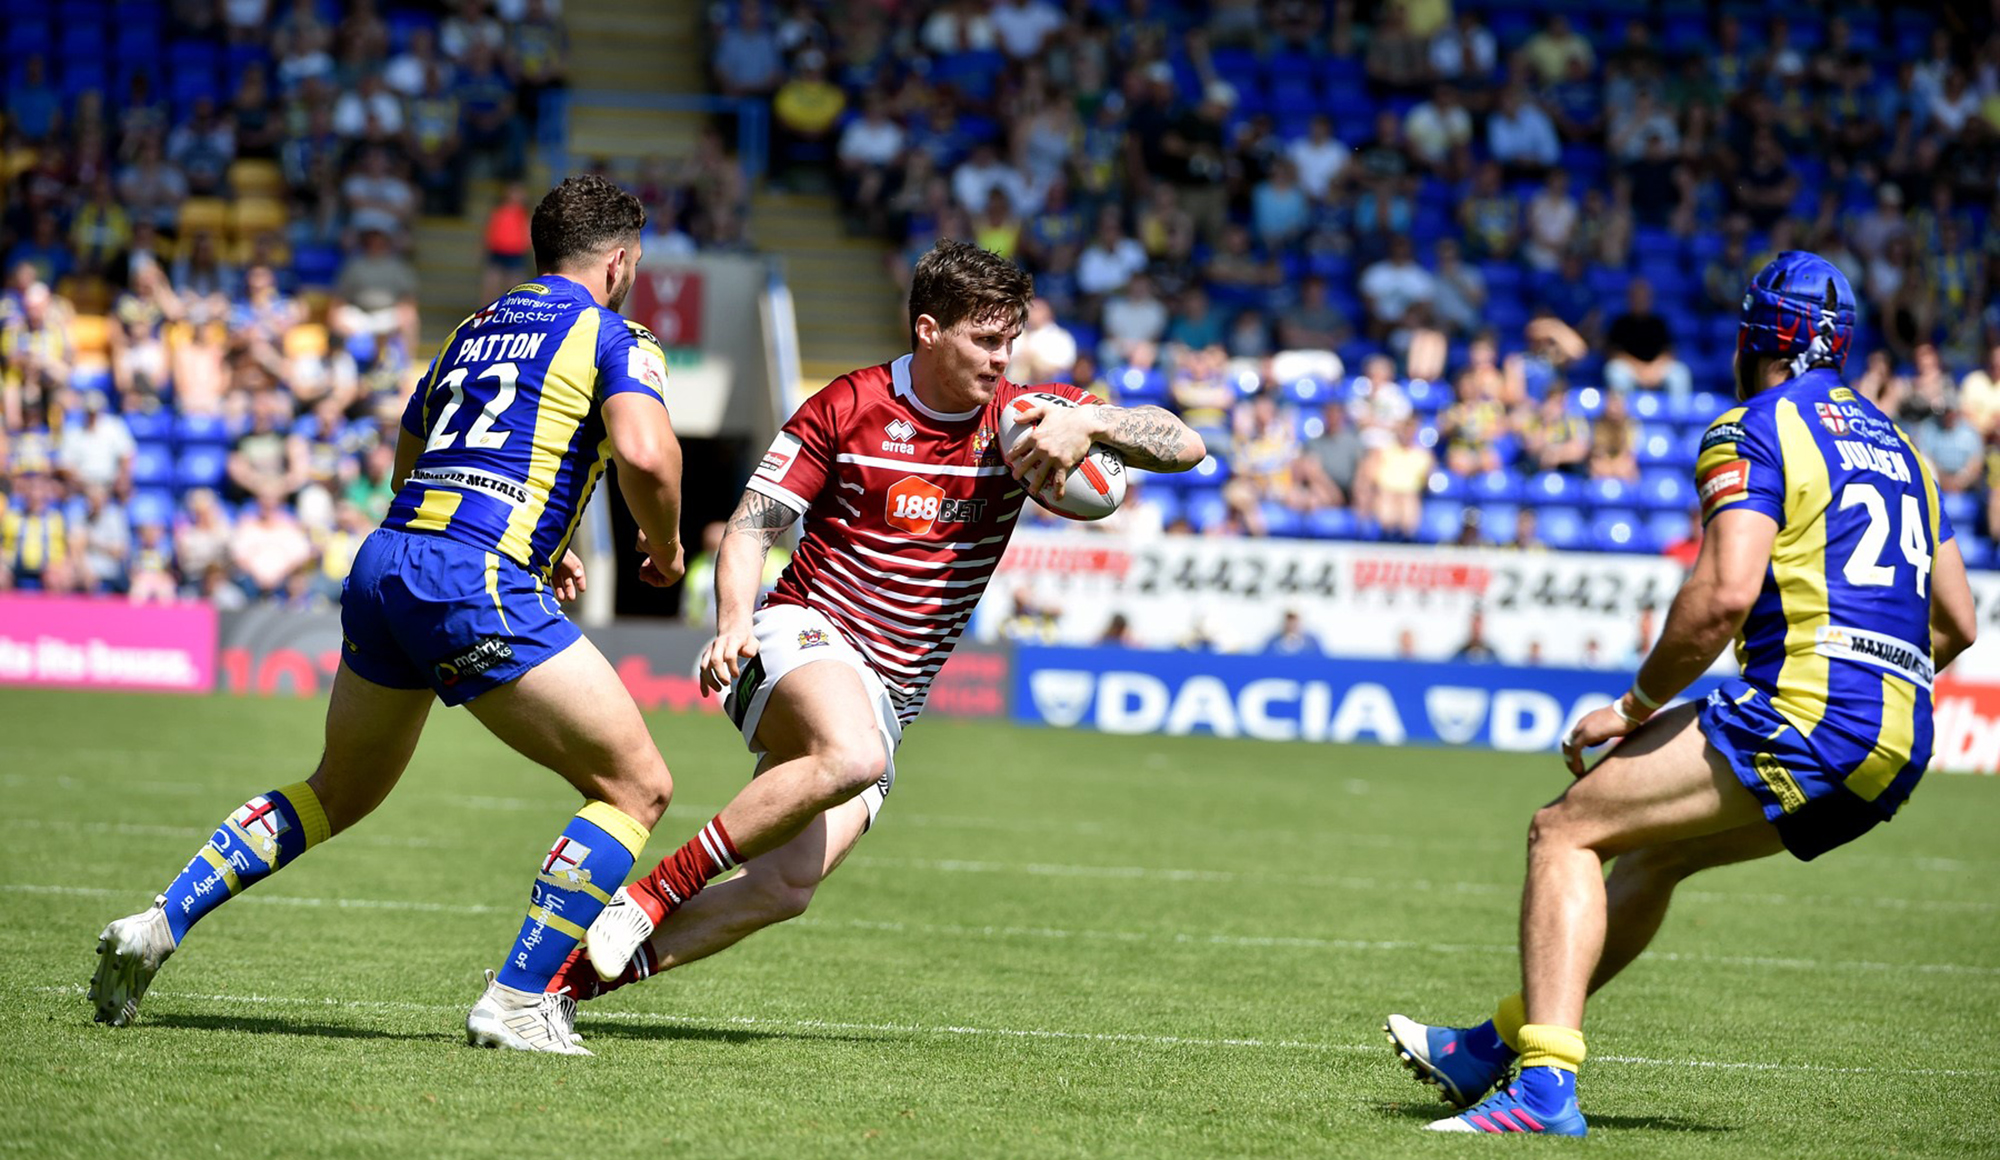 Warrington 26 Wigan 27